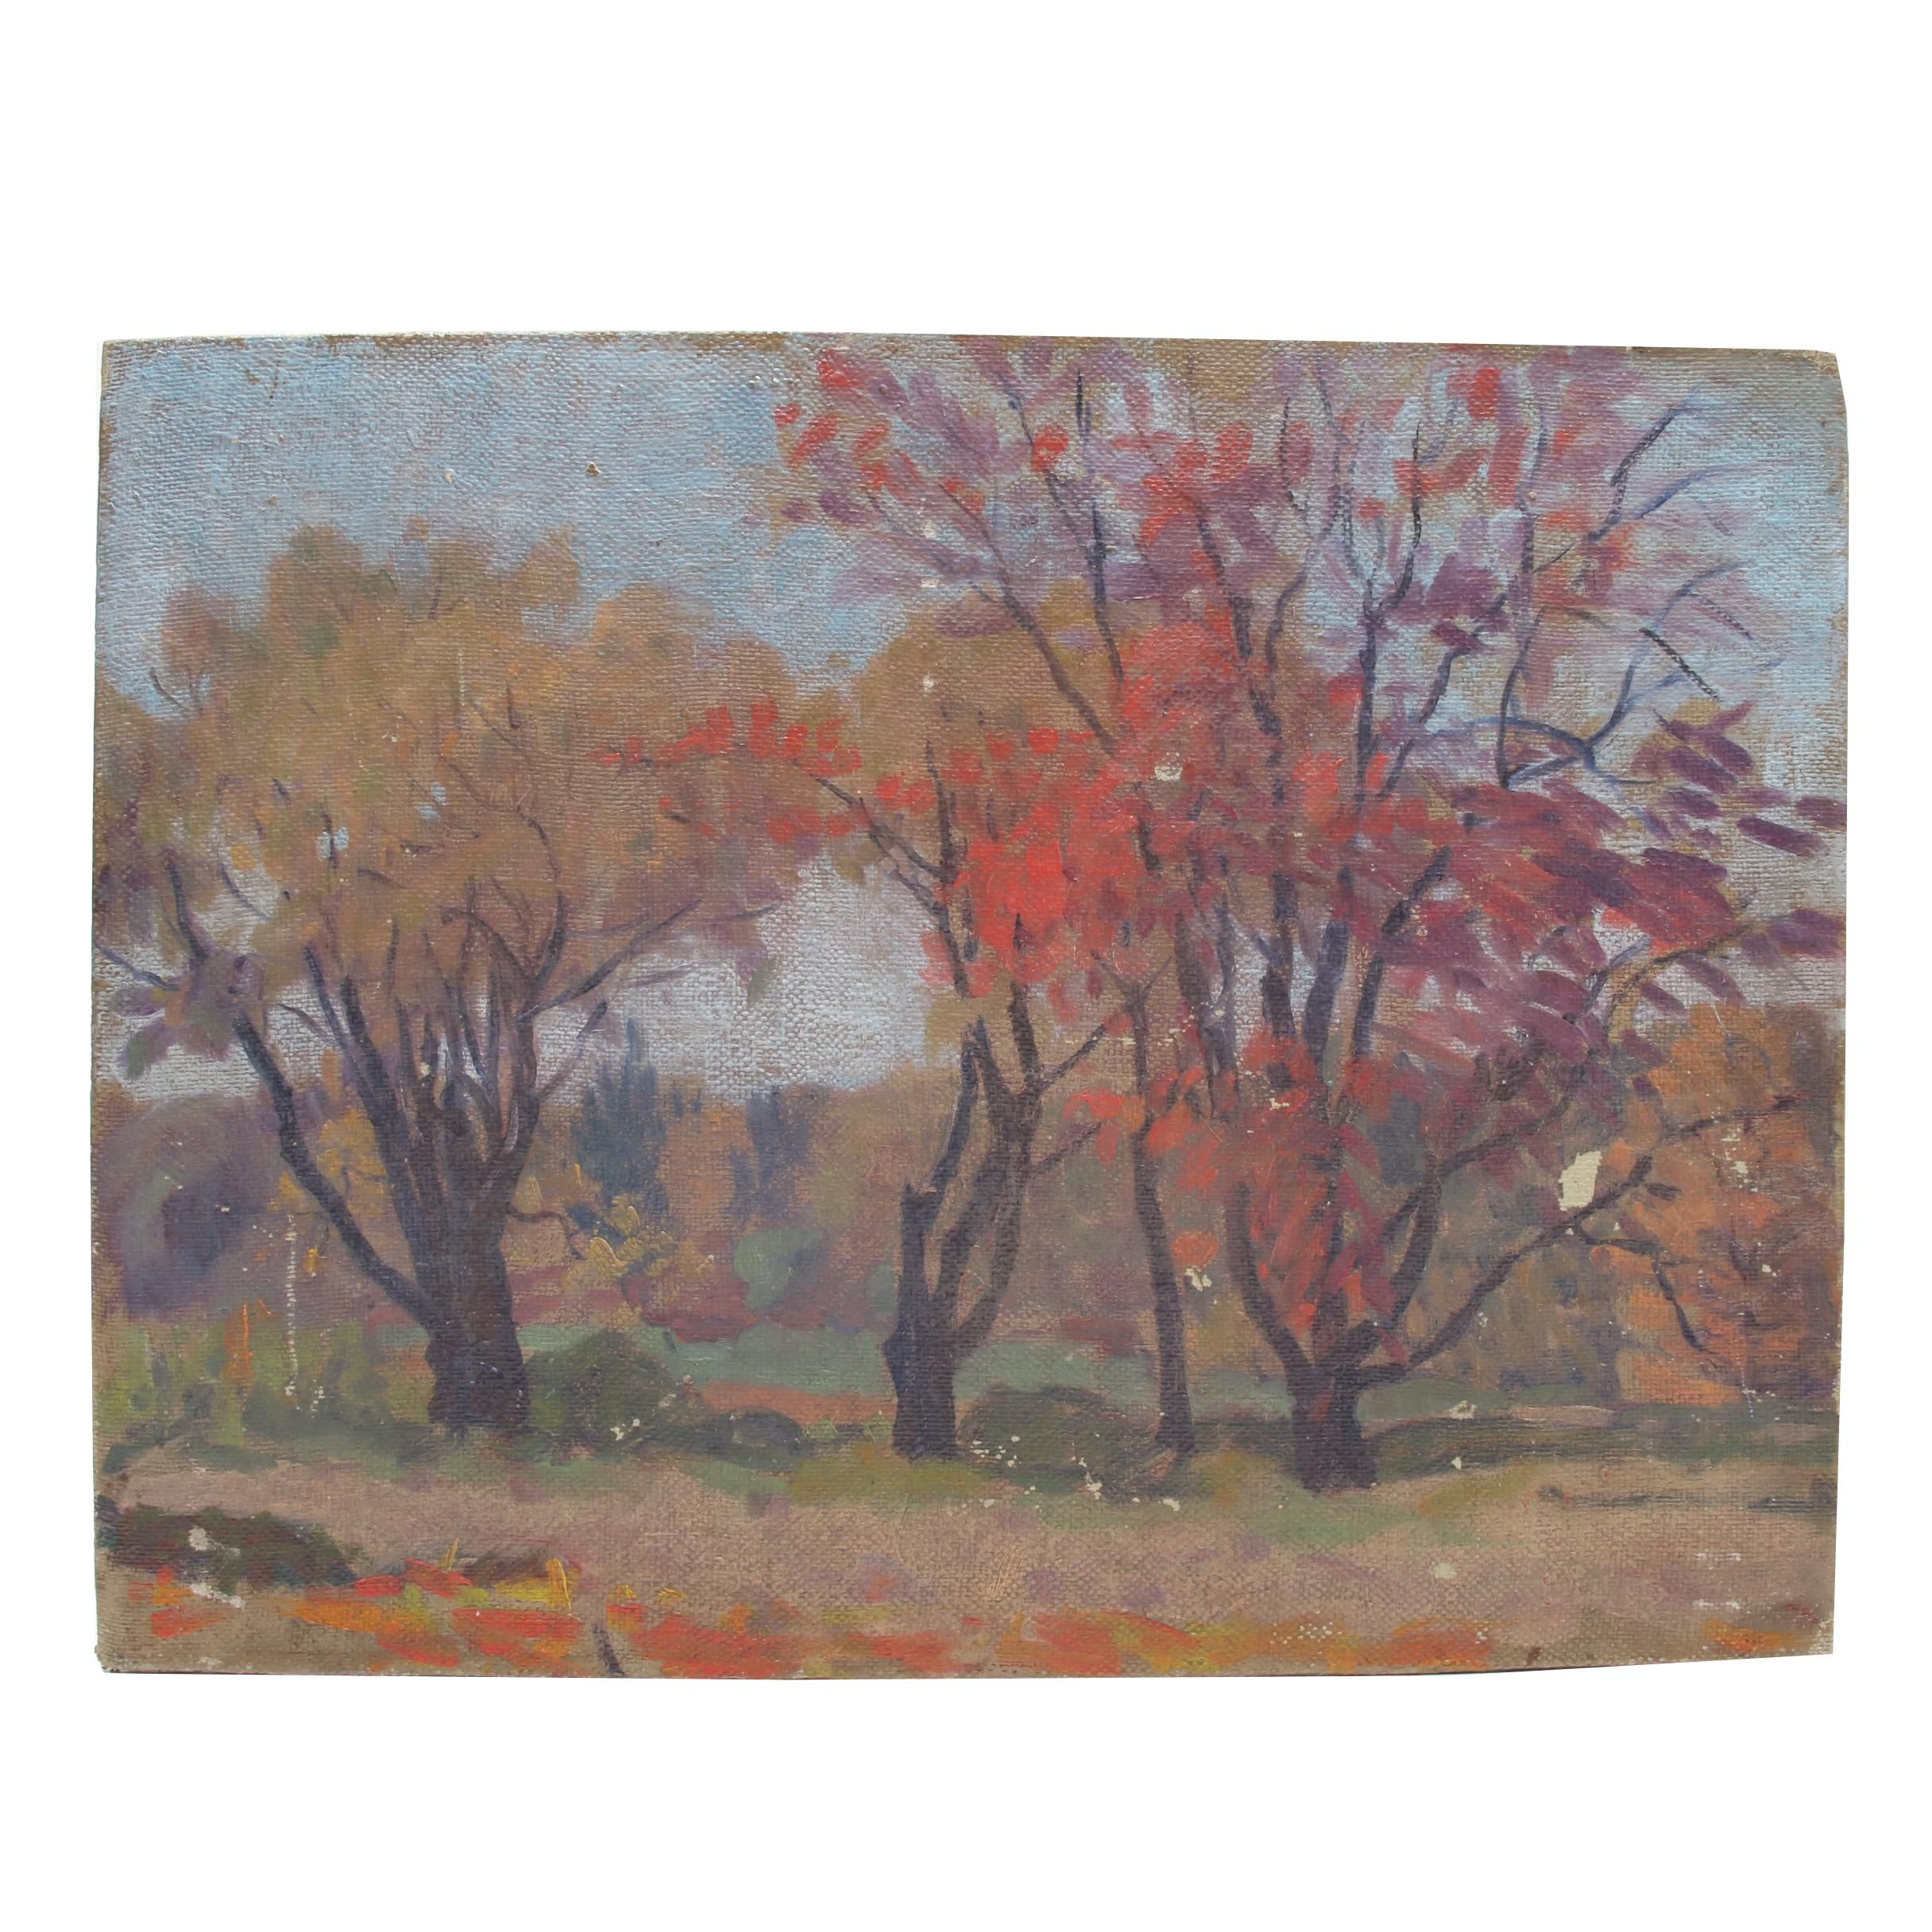 Oil Painting of Autumn Landscape